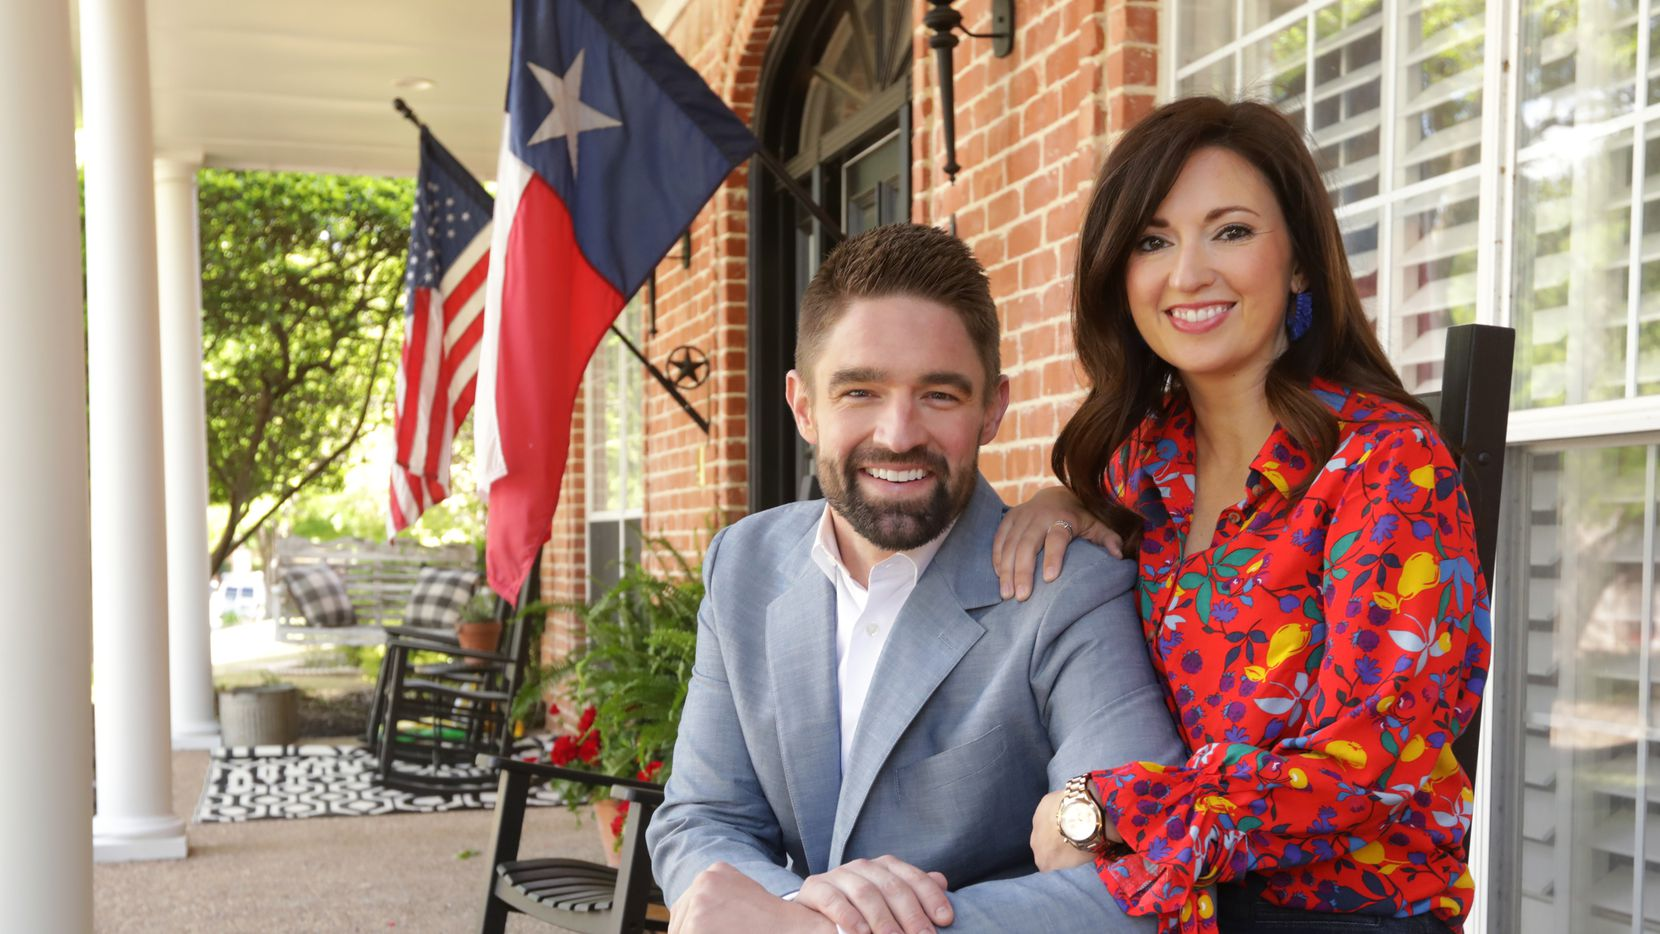 State Rep. Jeff Leach, R-Plano, and his wife, Becky, at their home. During legislative testimony in Austin earlier this spring, Becky Leach spoke about surviving years of sexual abuse as a child.